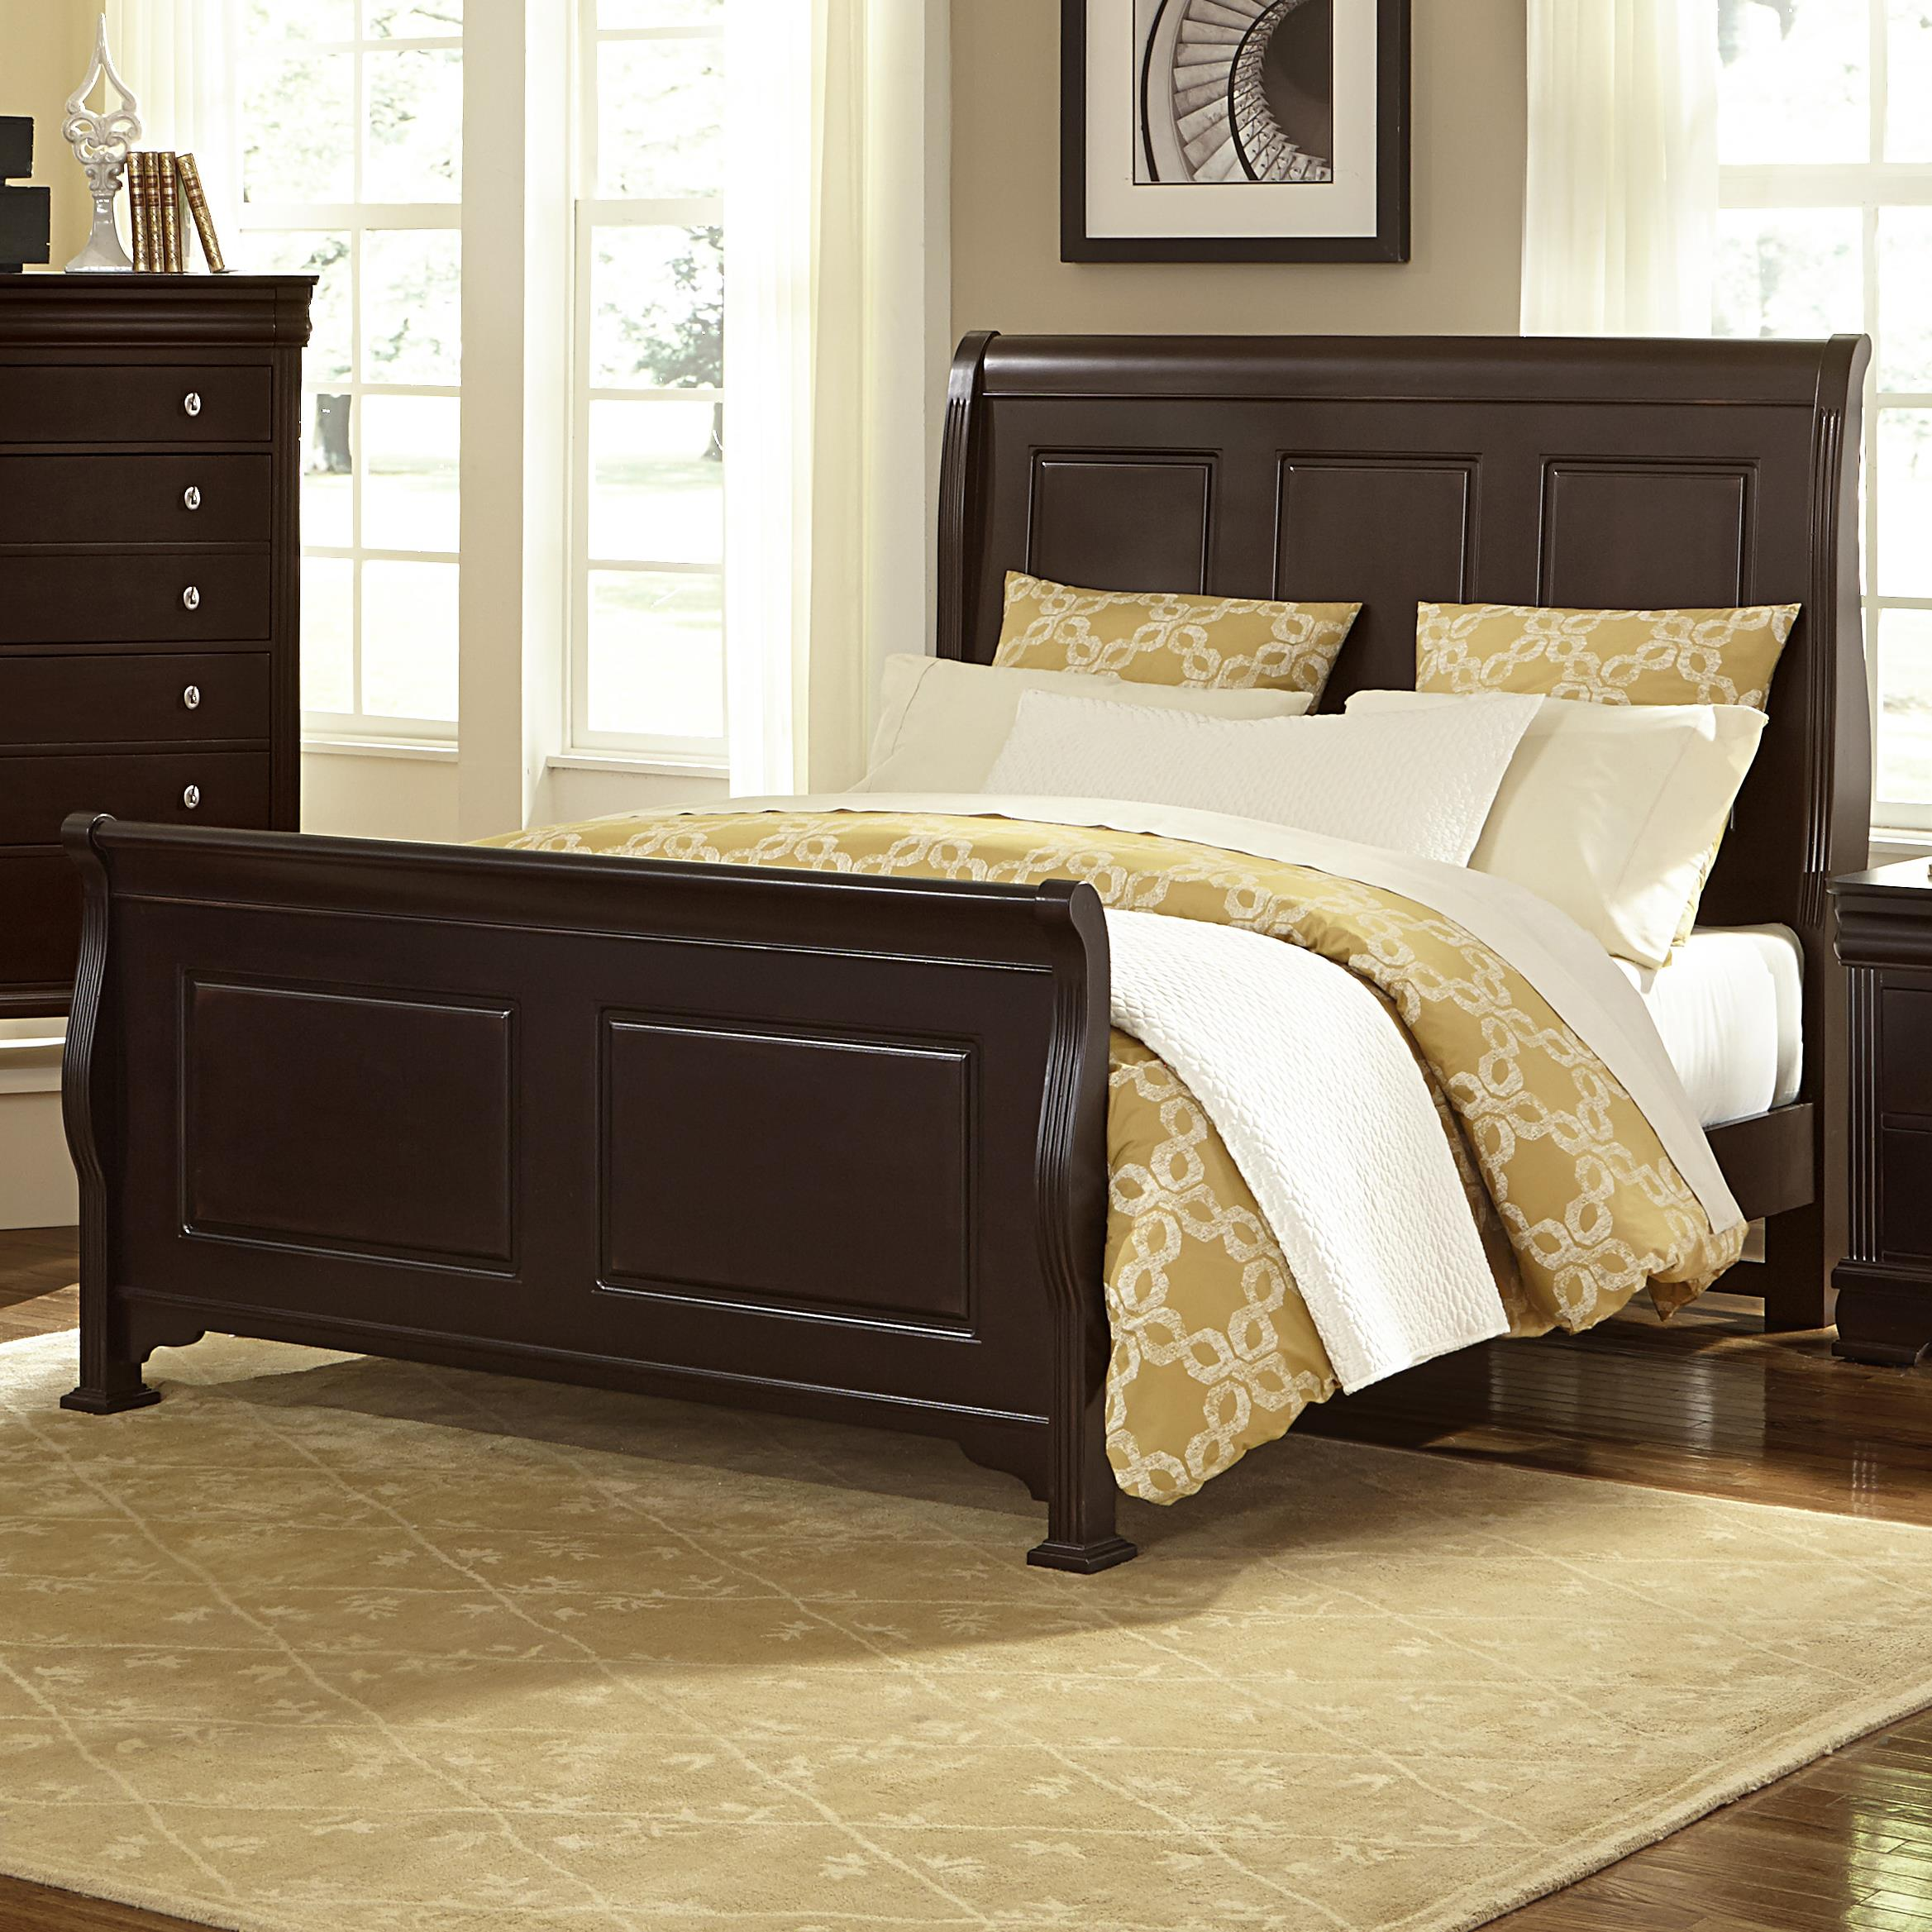 Vaughan Bassett French Market Queen Sleigh Bed - Item Number: 380-551+155+922